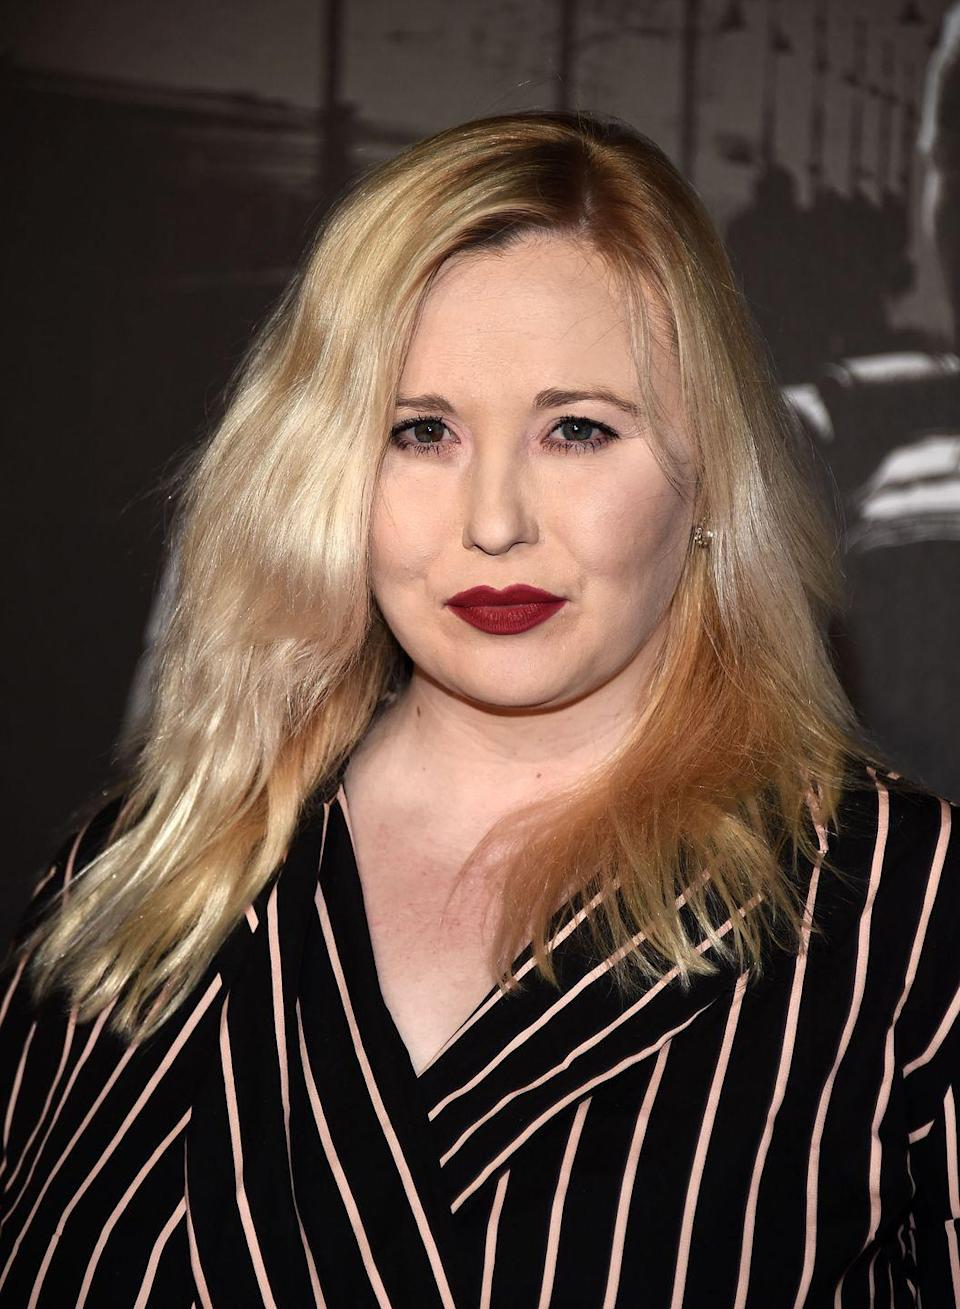 <p>Clint Eastwood's daughter Kathryn works as an actress and screenwriter and was recognized as Miss Golden Globe in 2005. </p>